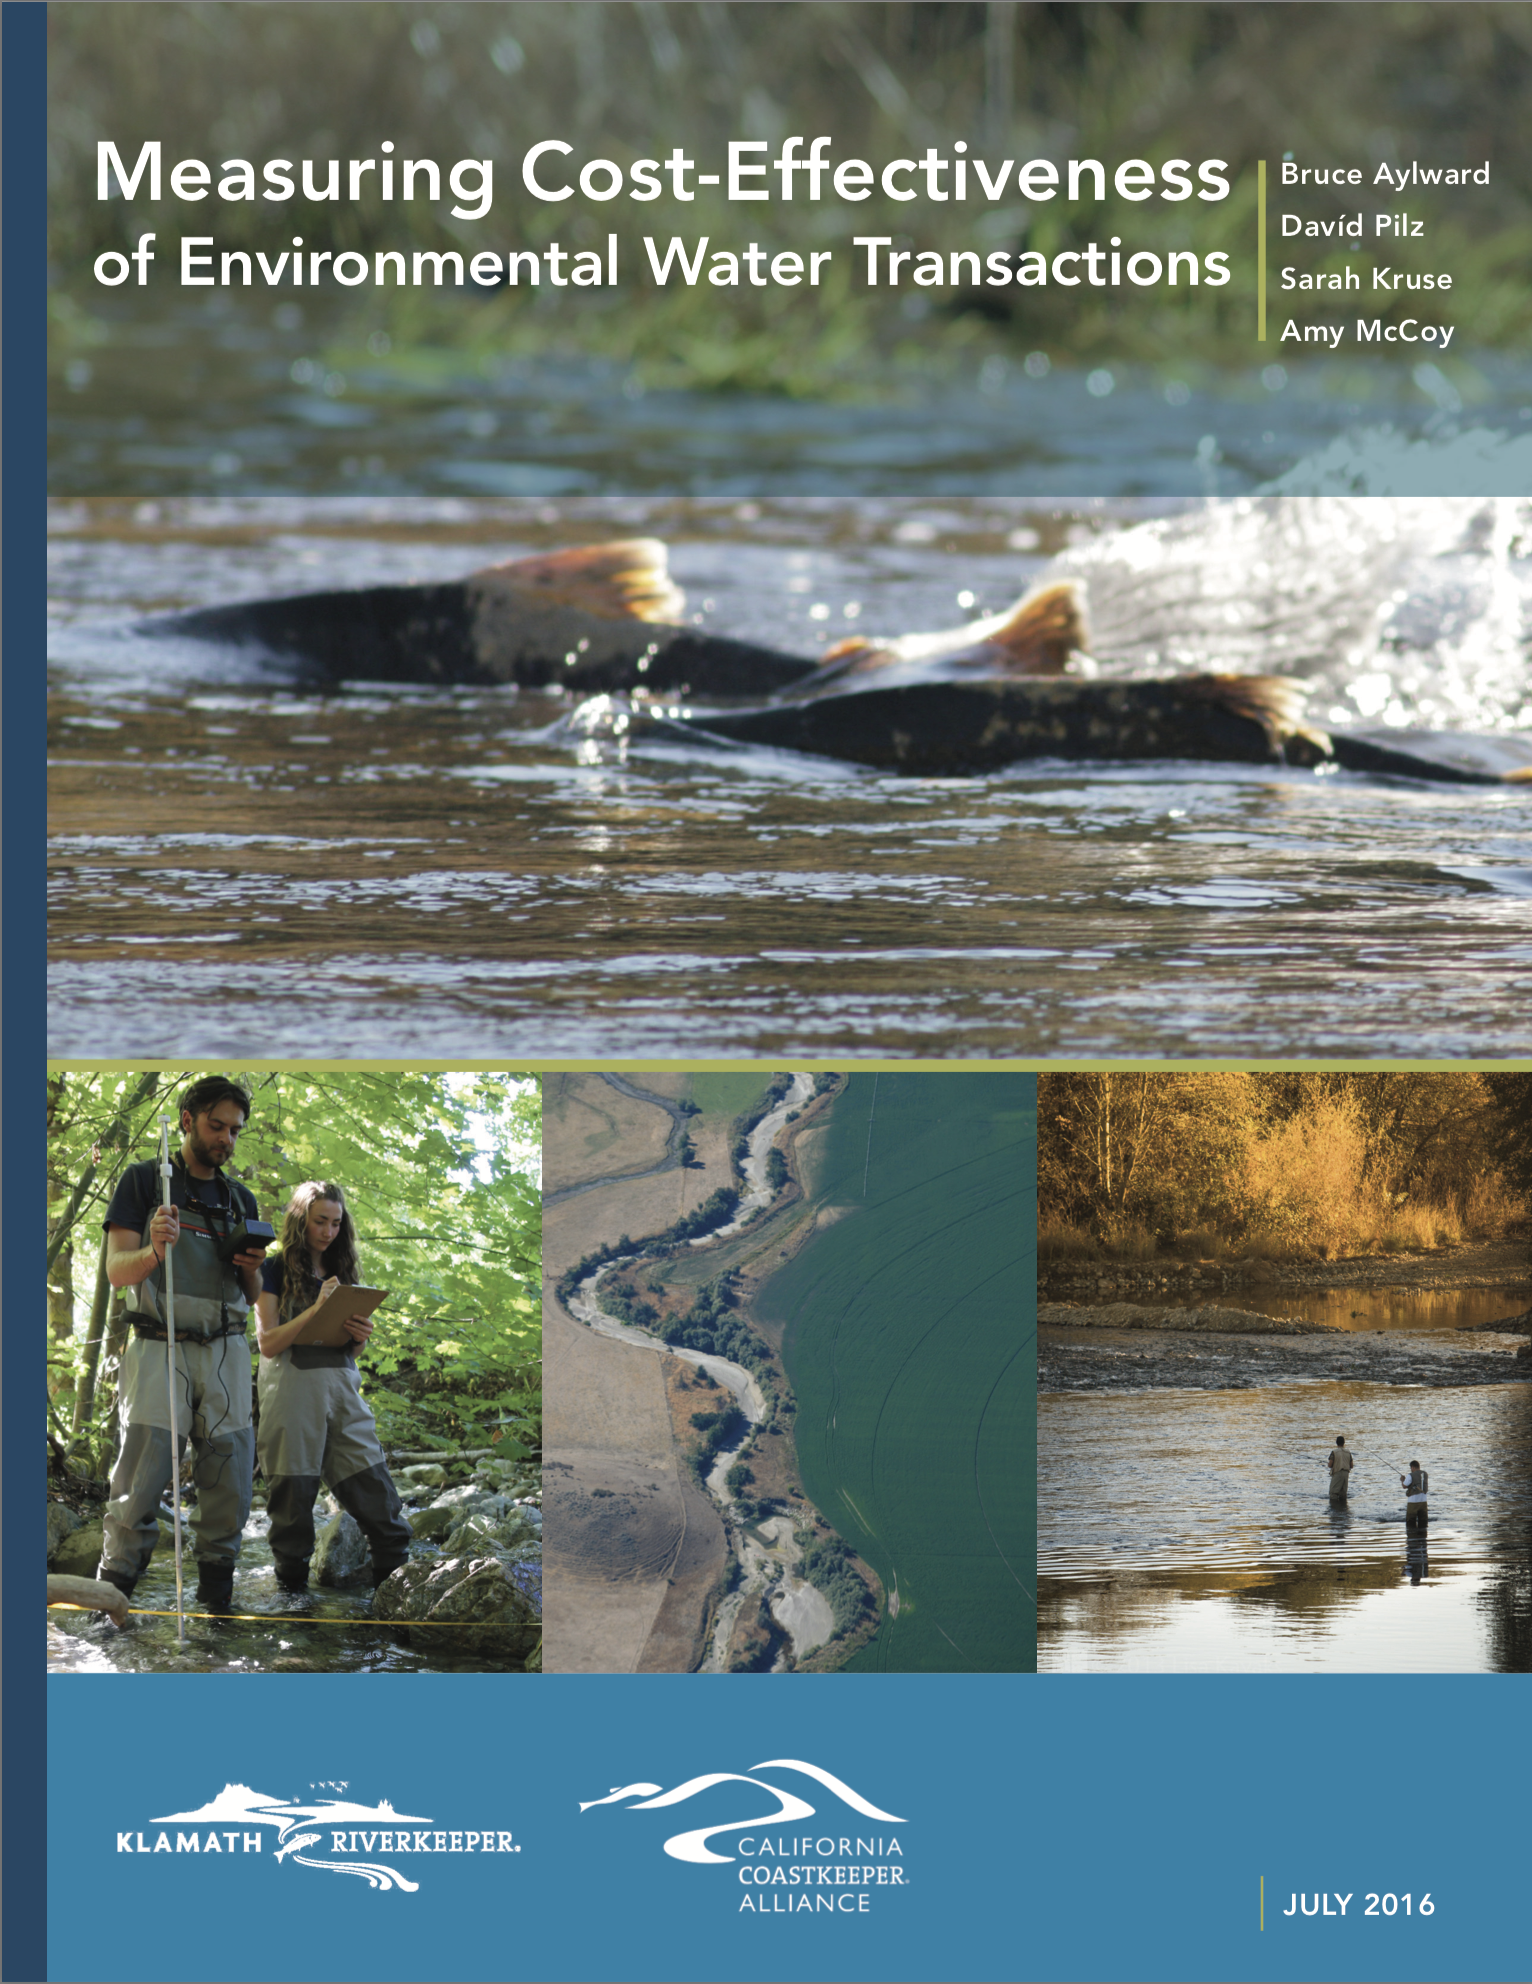 Cost-Effectiveness of Environmental Water Transactions